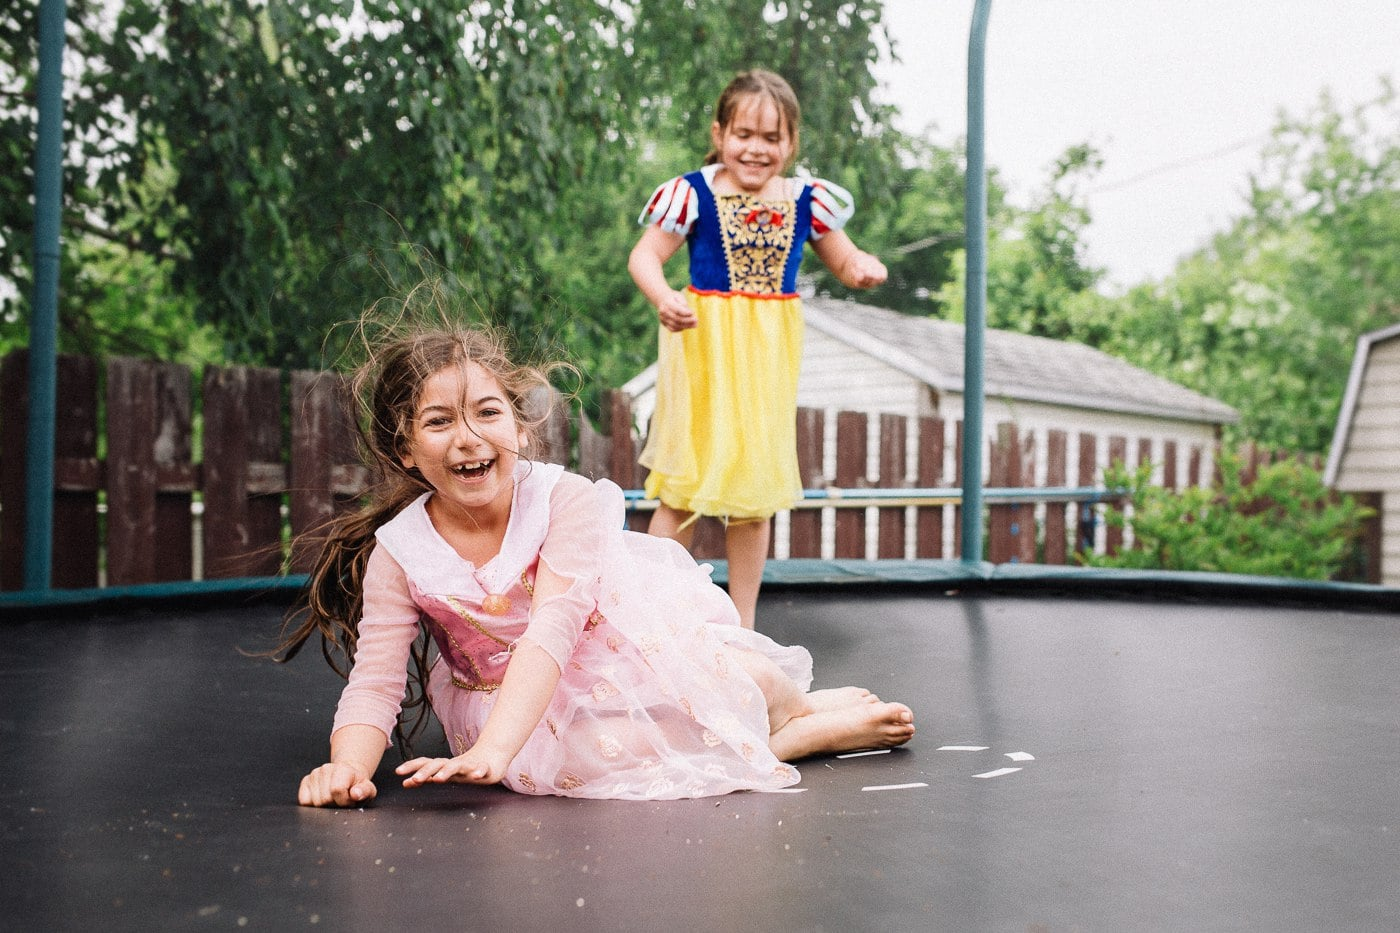 girls on trampoline in princess dresses laughing